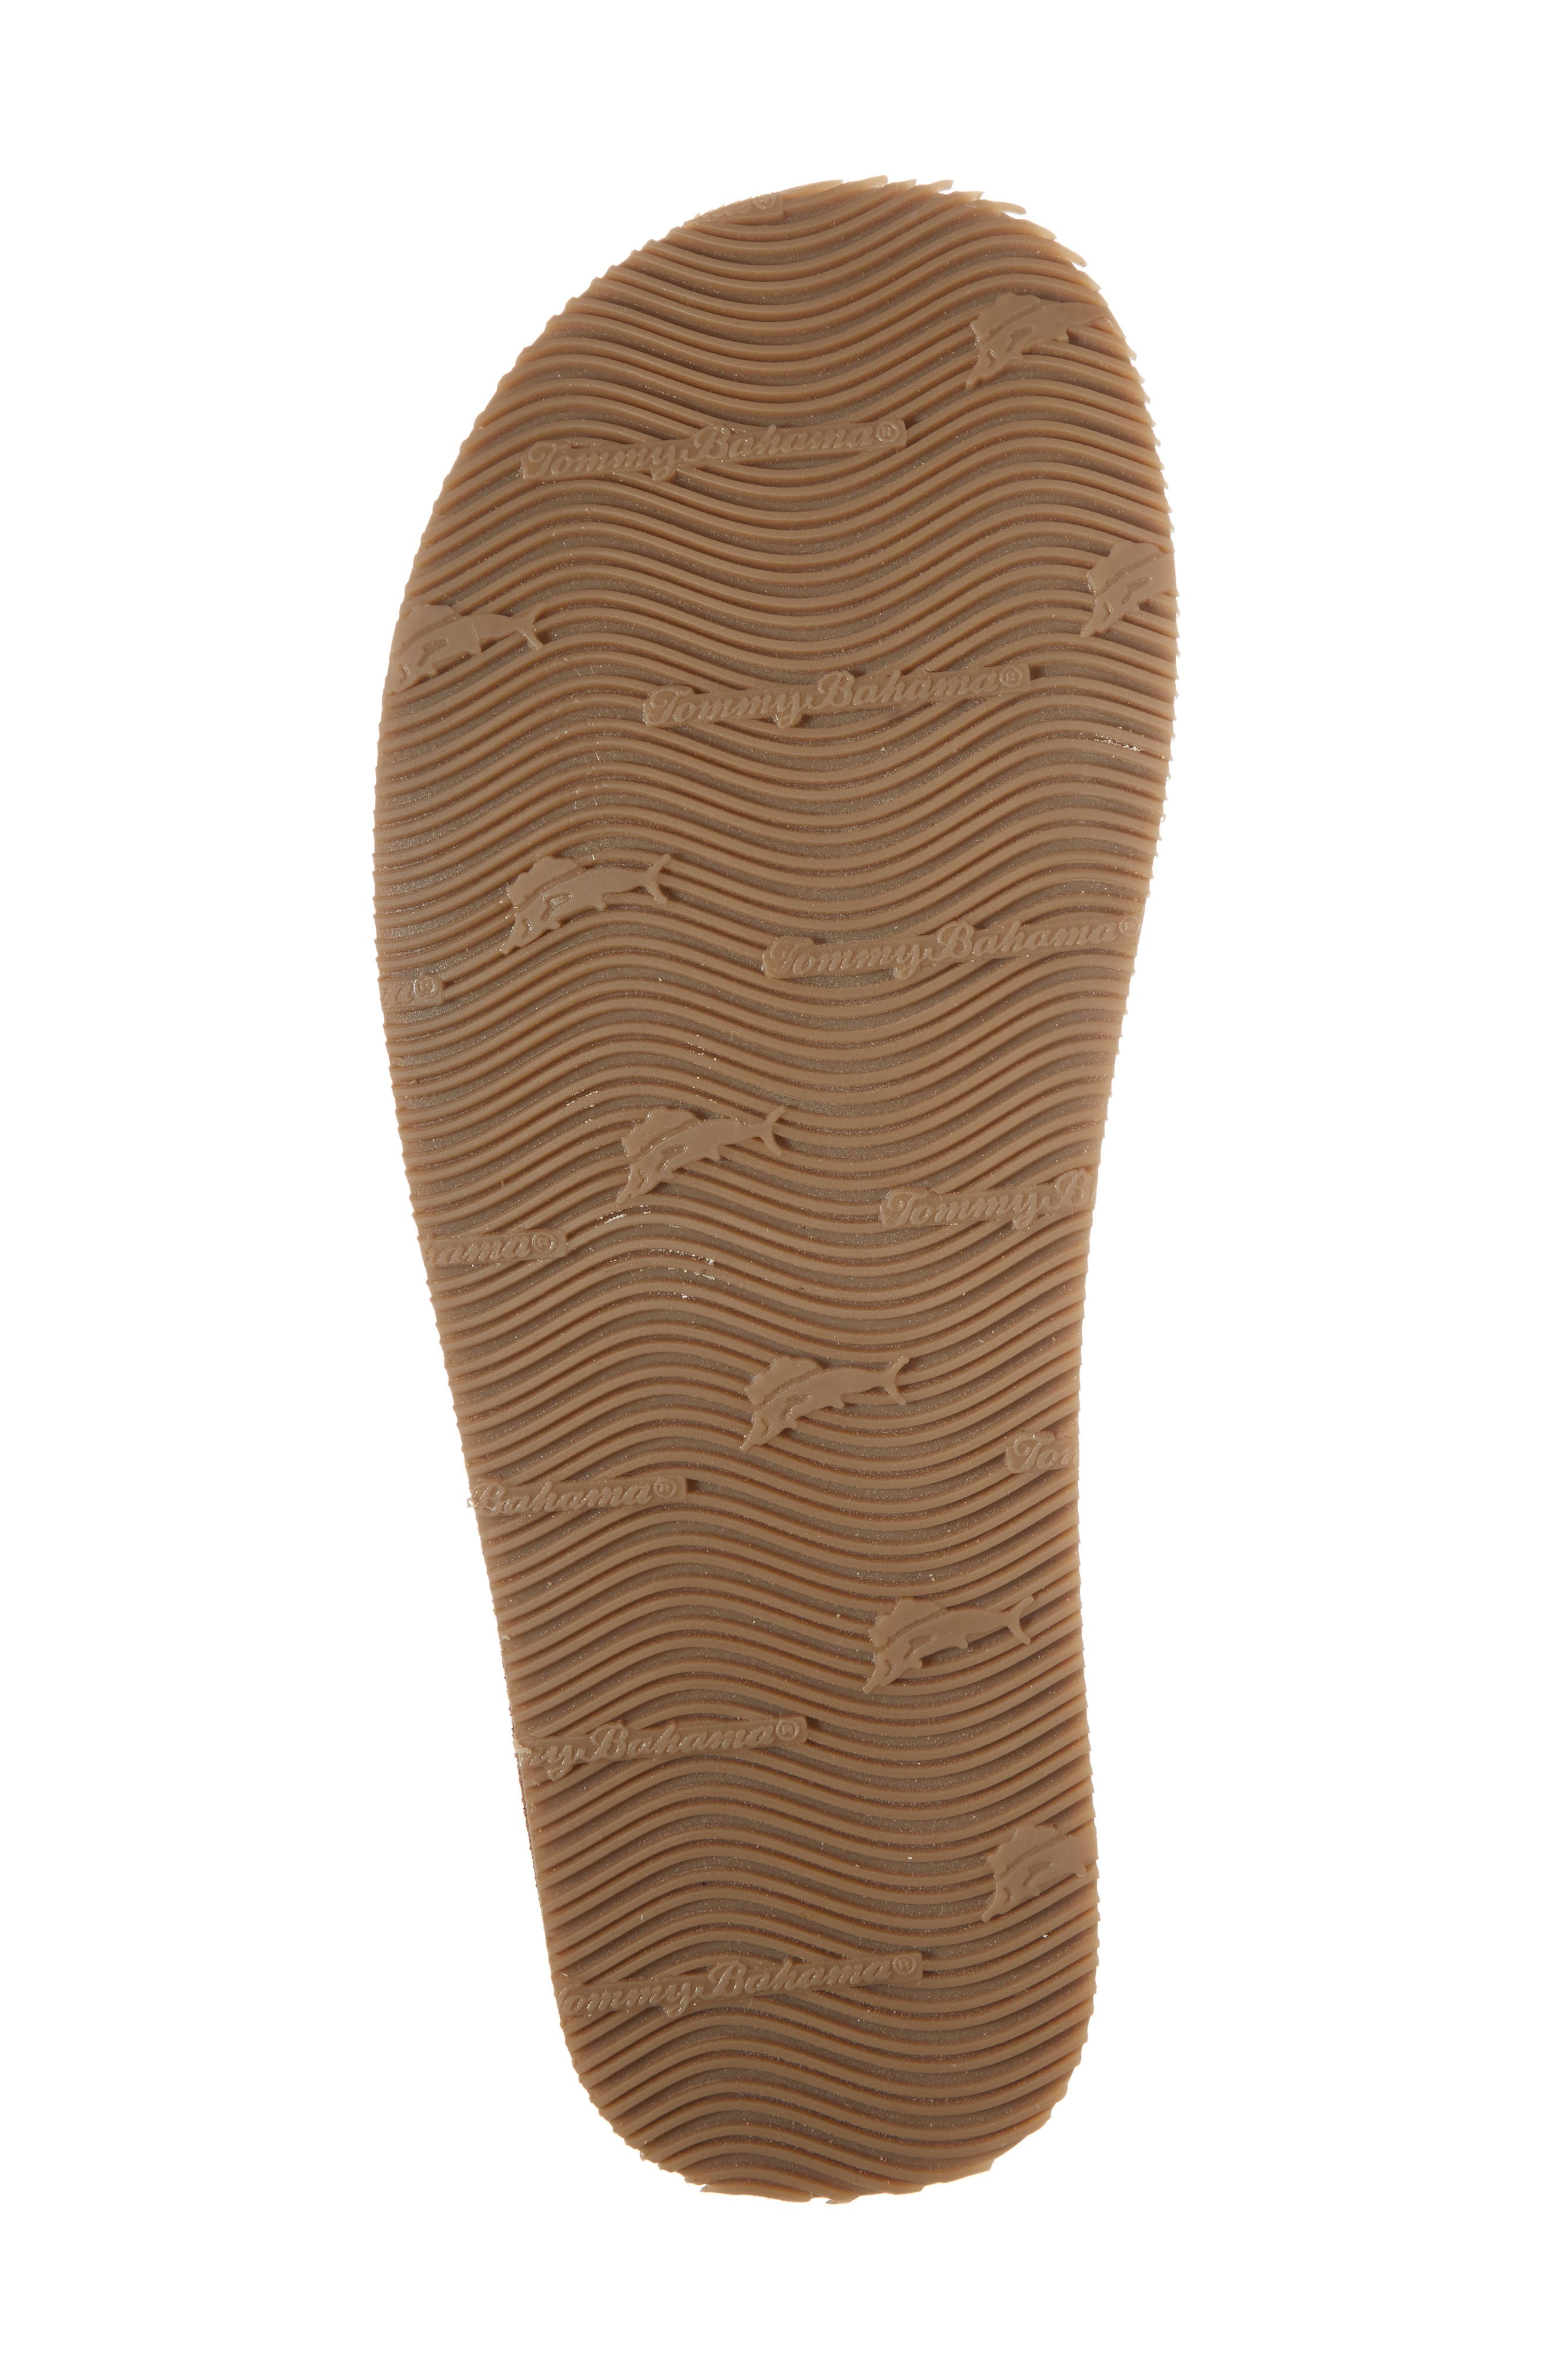 TOMMY BAHAMA, Adderly Flip Flop, Alternate thumbnail 6, color, TAN LEATHER